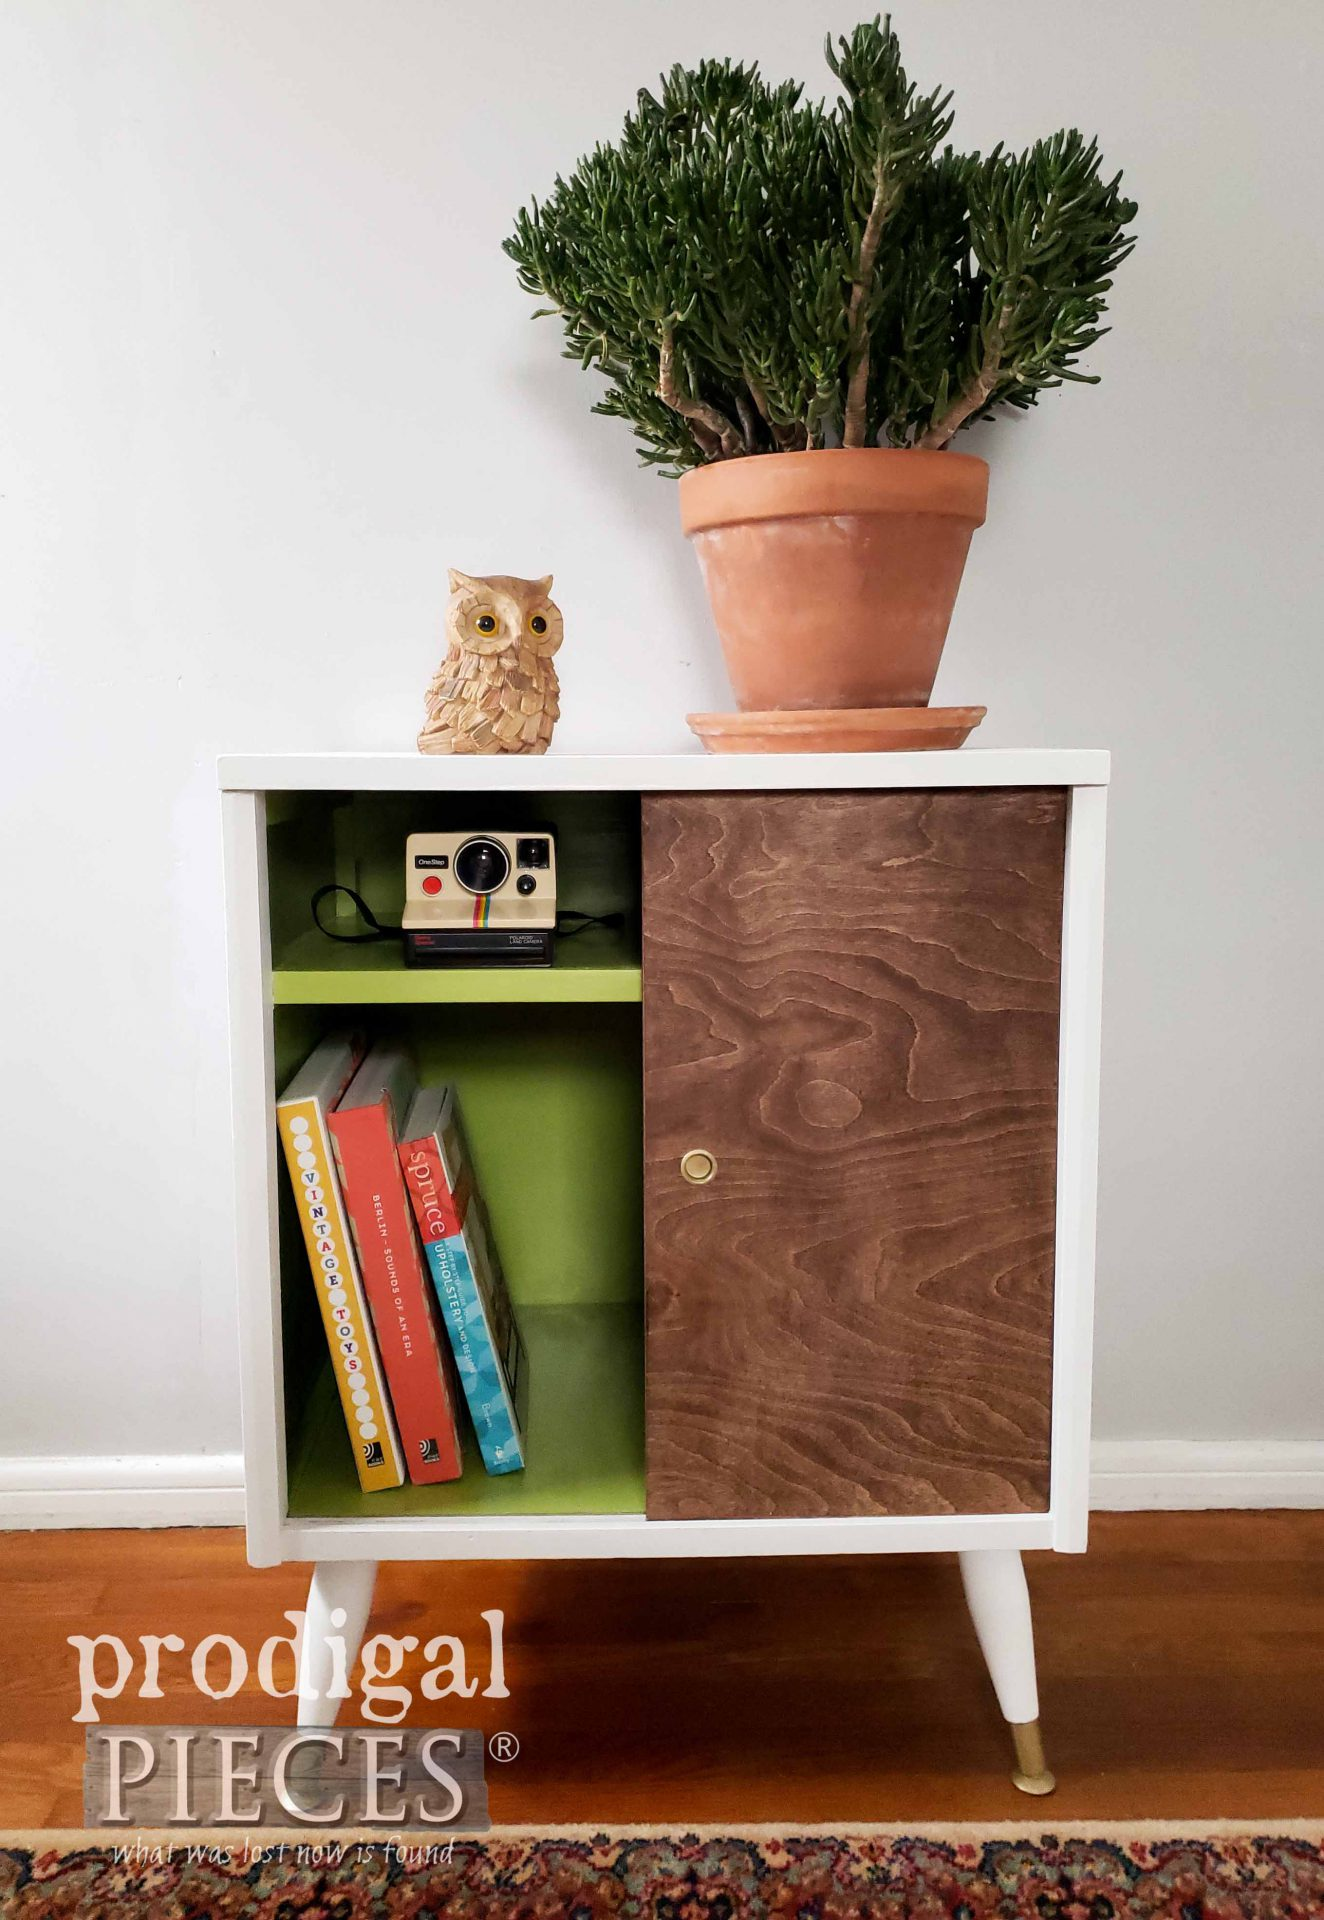 Retro Vintage Mid Century Modern Media Stand with Color Pop Fun by Larissa of Prodigal Pieces | prodigalpieces.com #prodigalpieces #furniture #midcentury #diy #modern #boho #home #homedecor